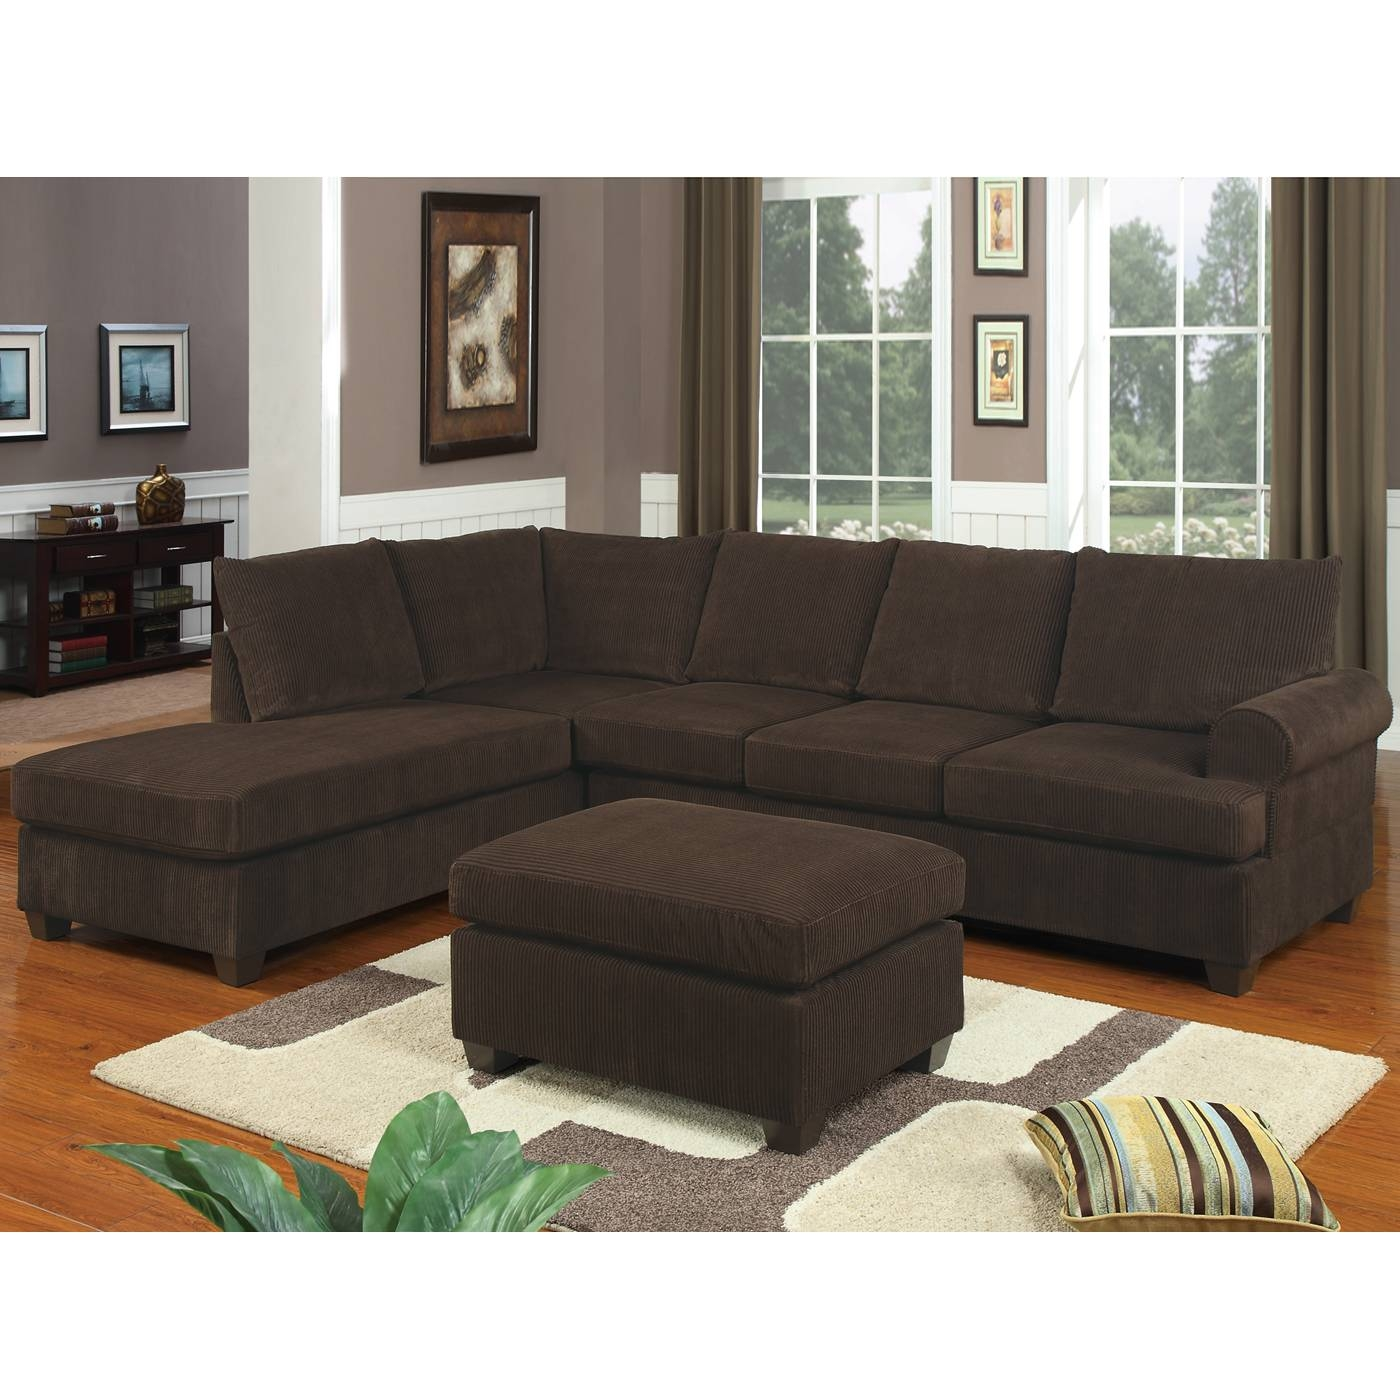 10 Foot Sectional Sofa - Tourdecarroll throughout 10 Foot Sectional Sofa (Image 3 of 30)